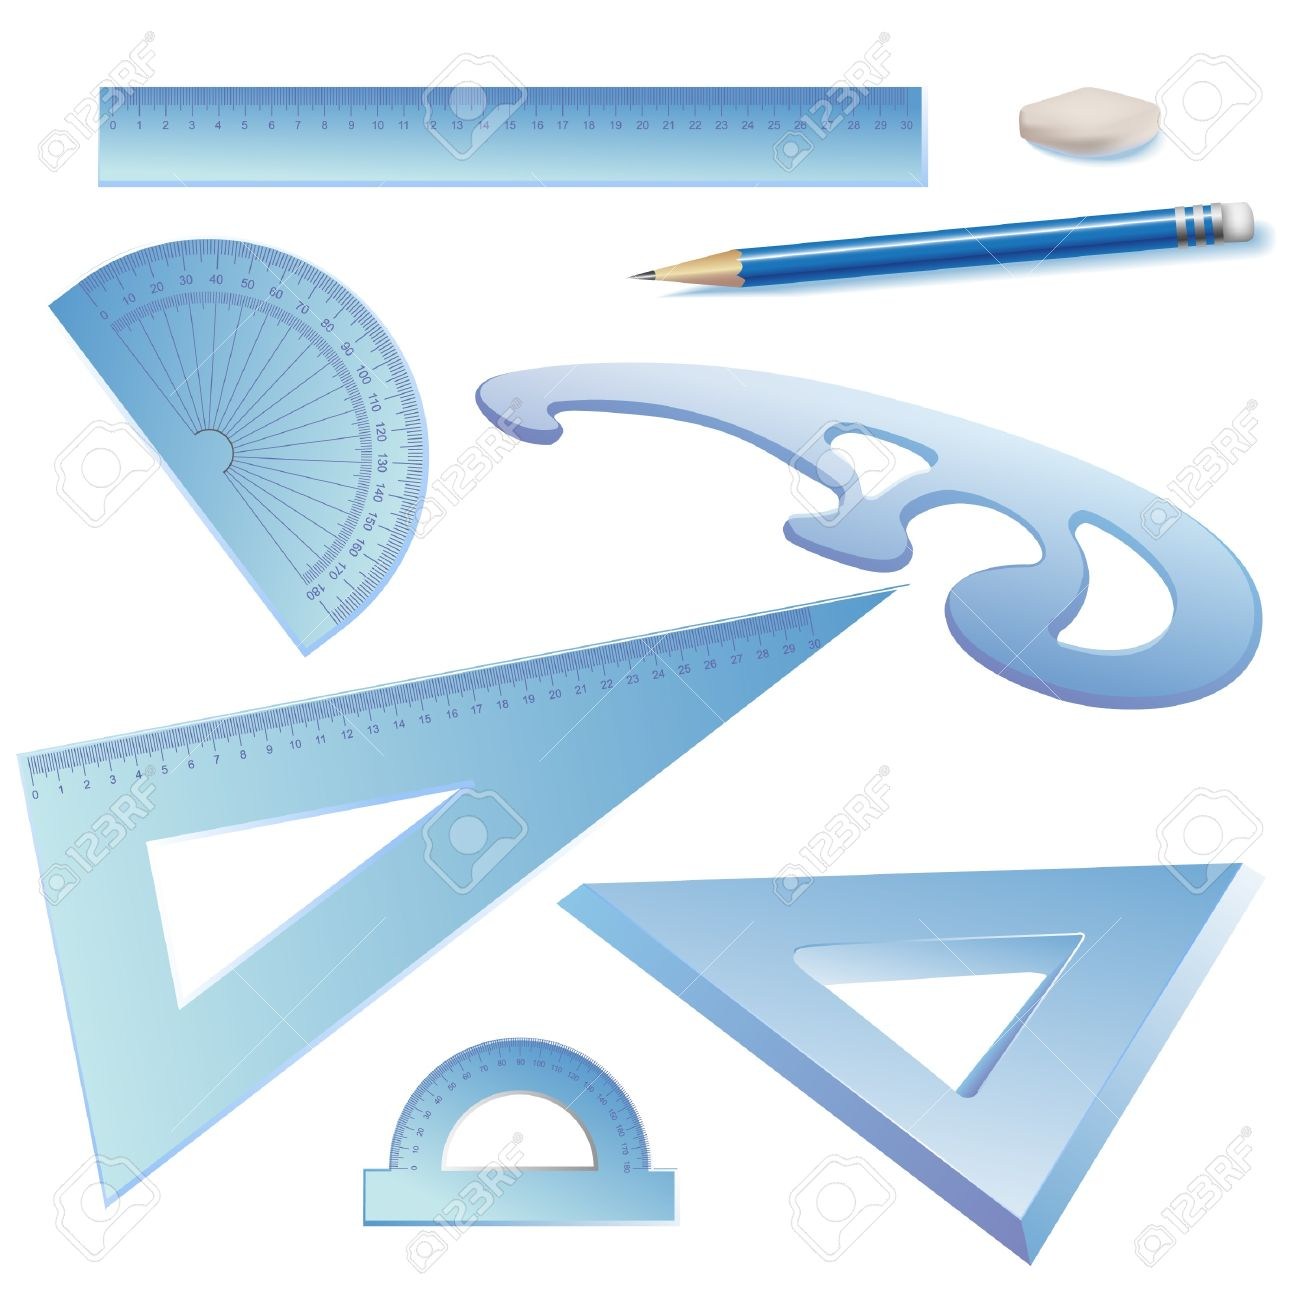 Set Of Architectural Drawing Tools Isolated On White Clip Art Stock Vector